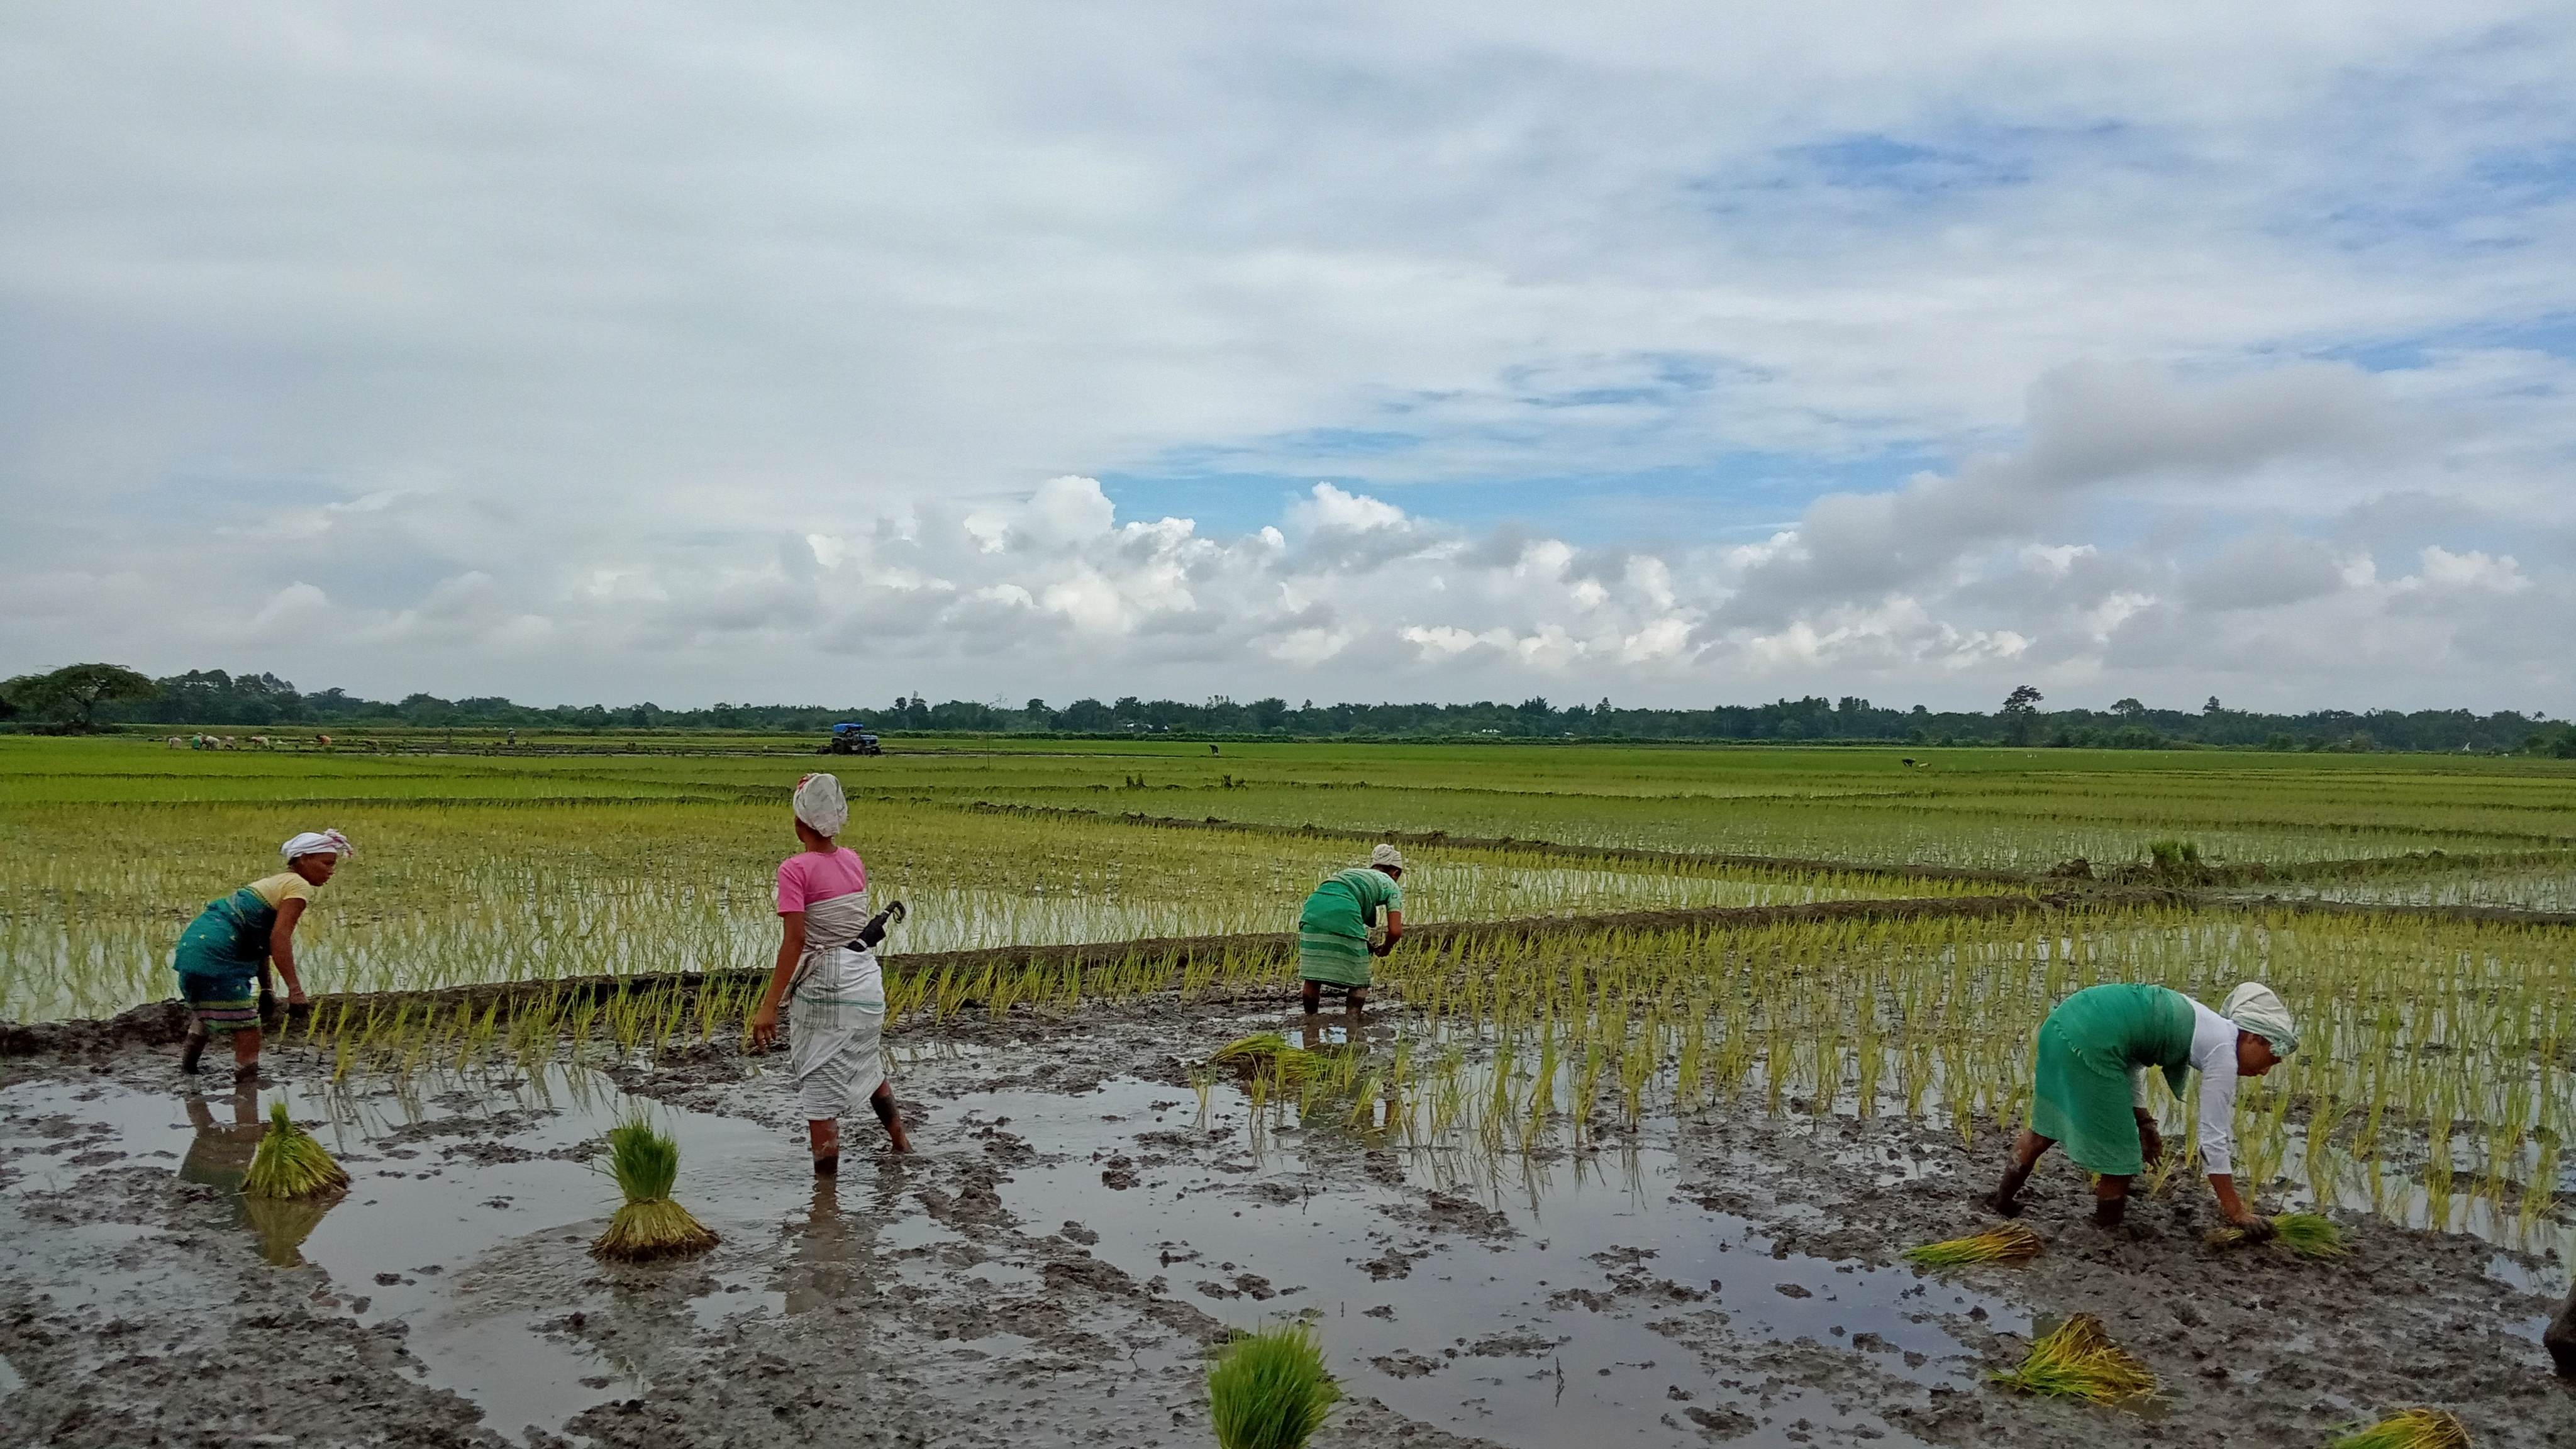 Rice Cultivation, Covid-19, flood, women, gender role